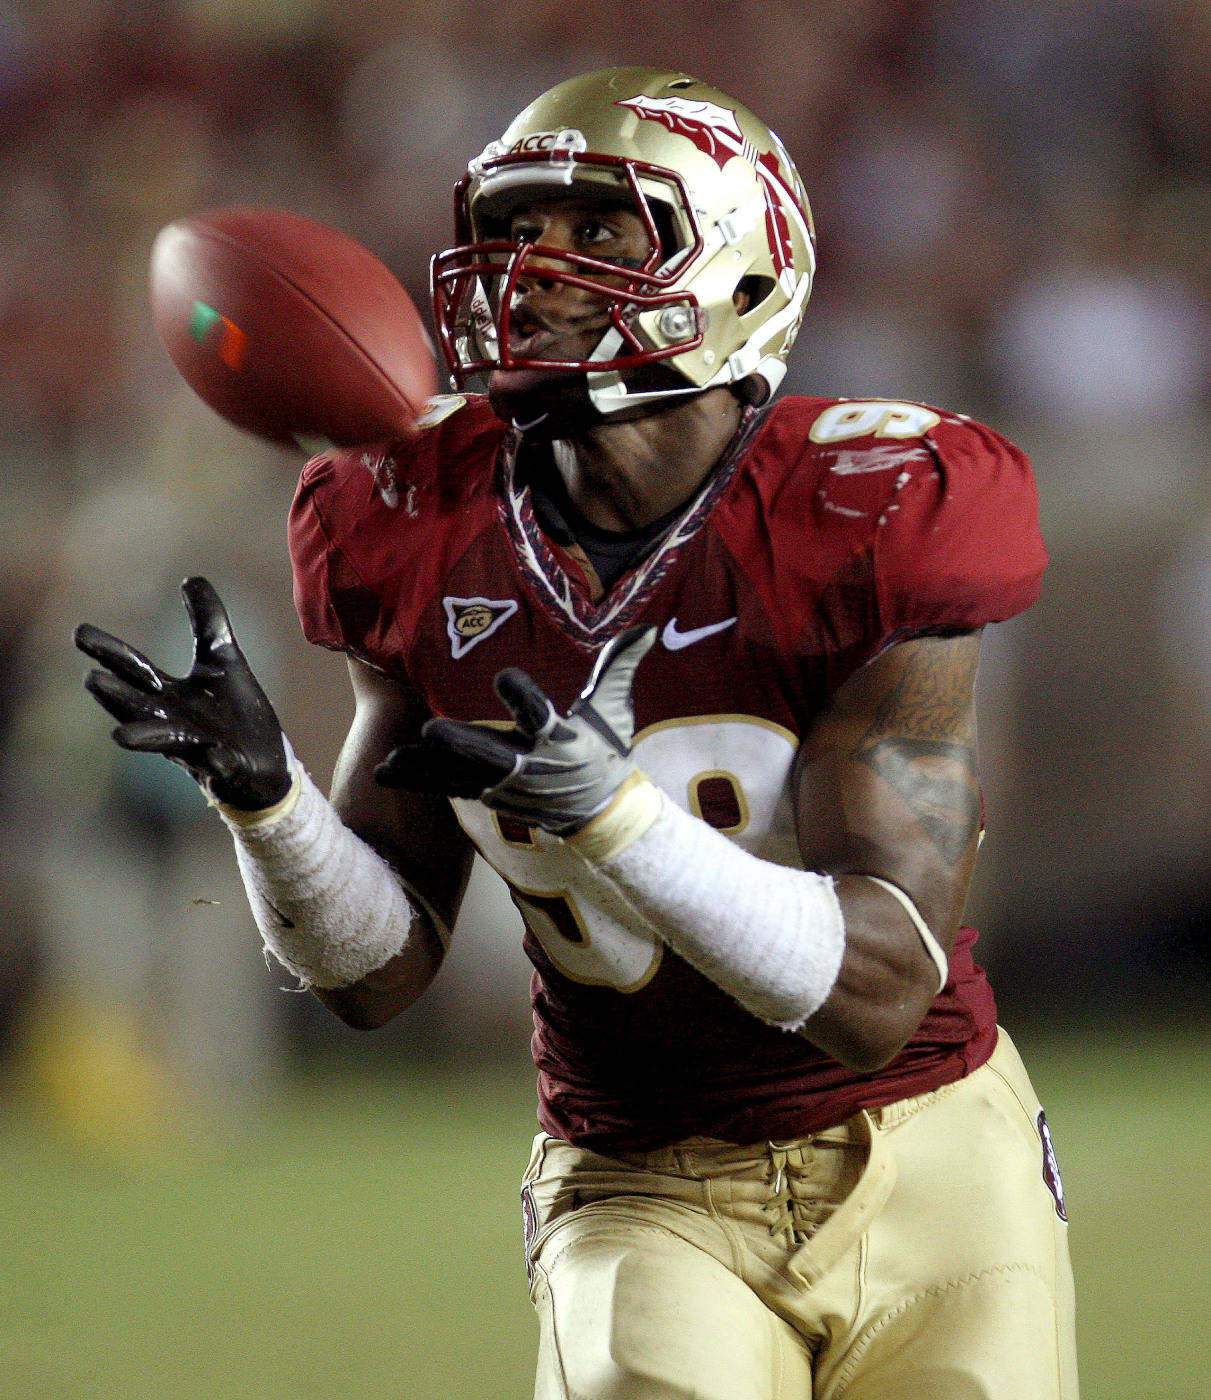 Florida State defensive end Markus White makes a fourth-quarter interception, returning it for a touchdown during an NCAA college football game against Miami, Monday, Sept. 7, 2009, in Tallahassee, Fla. Florida State won 38-34. (AP Photo/Phil Coale)